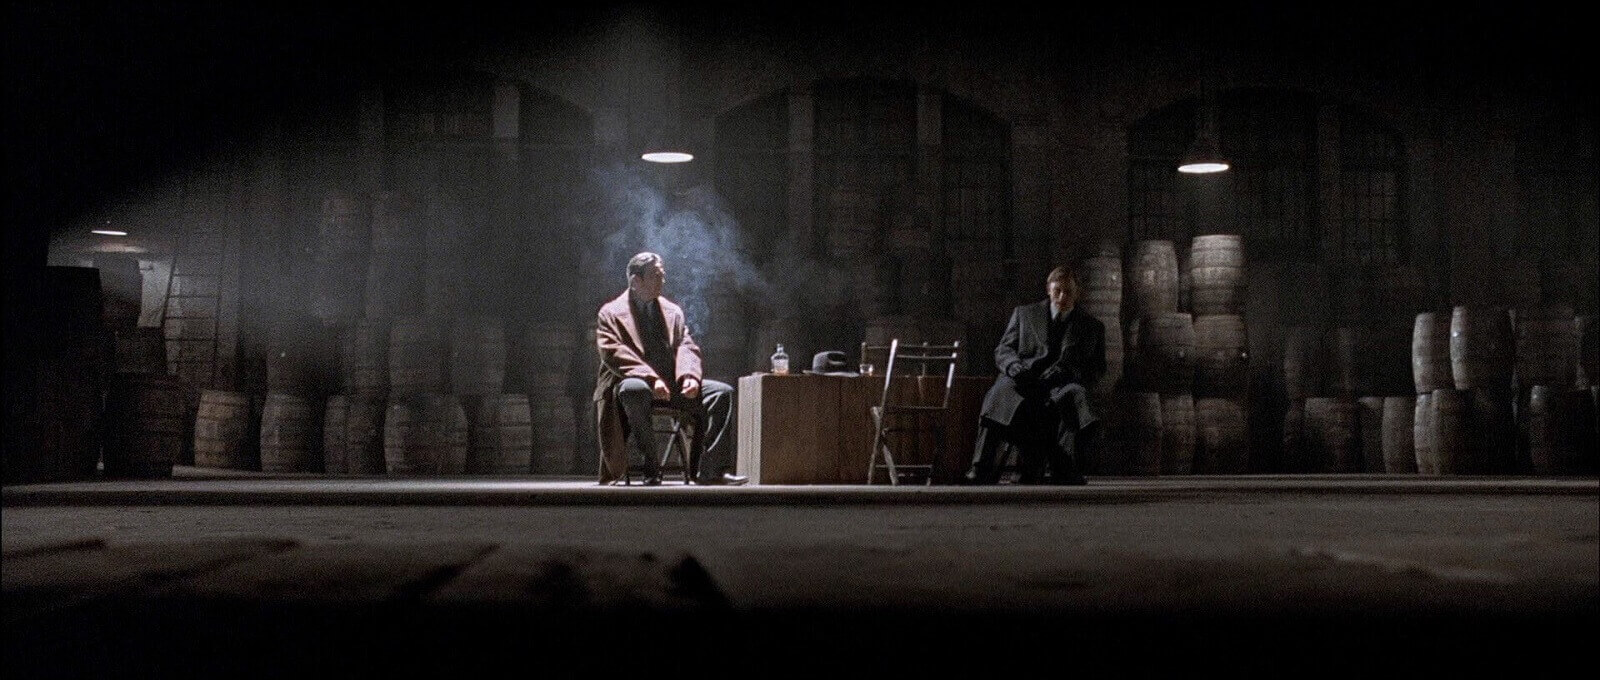 Road to Perdition Awards - Cinematography